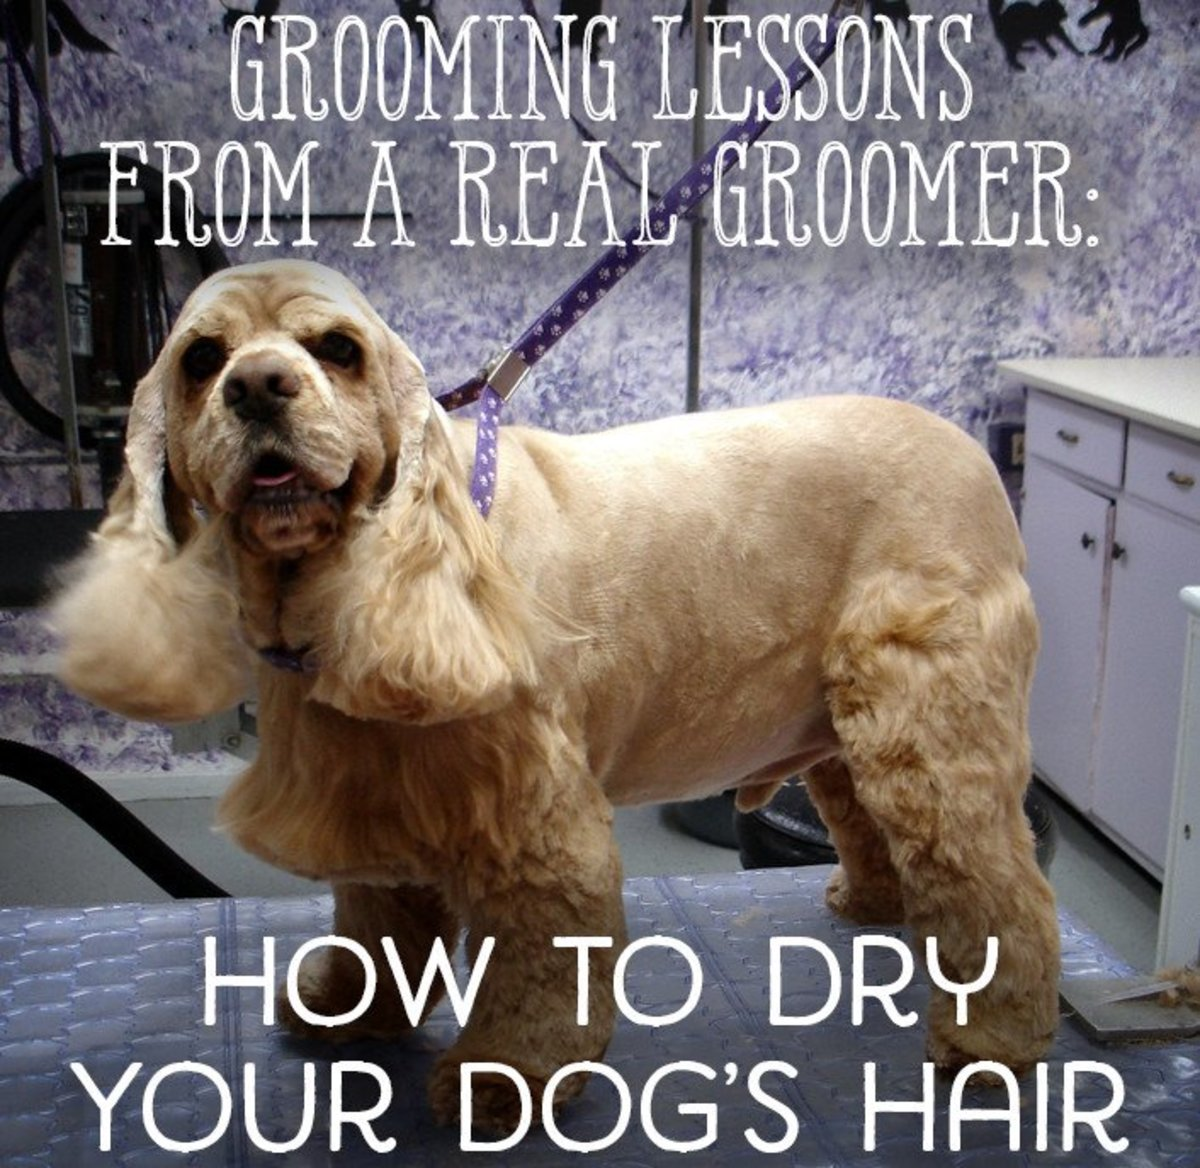 How to dry your dog's hair